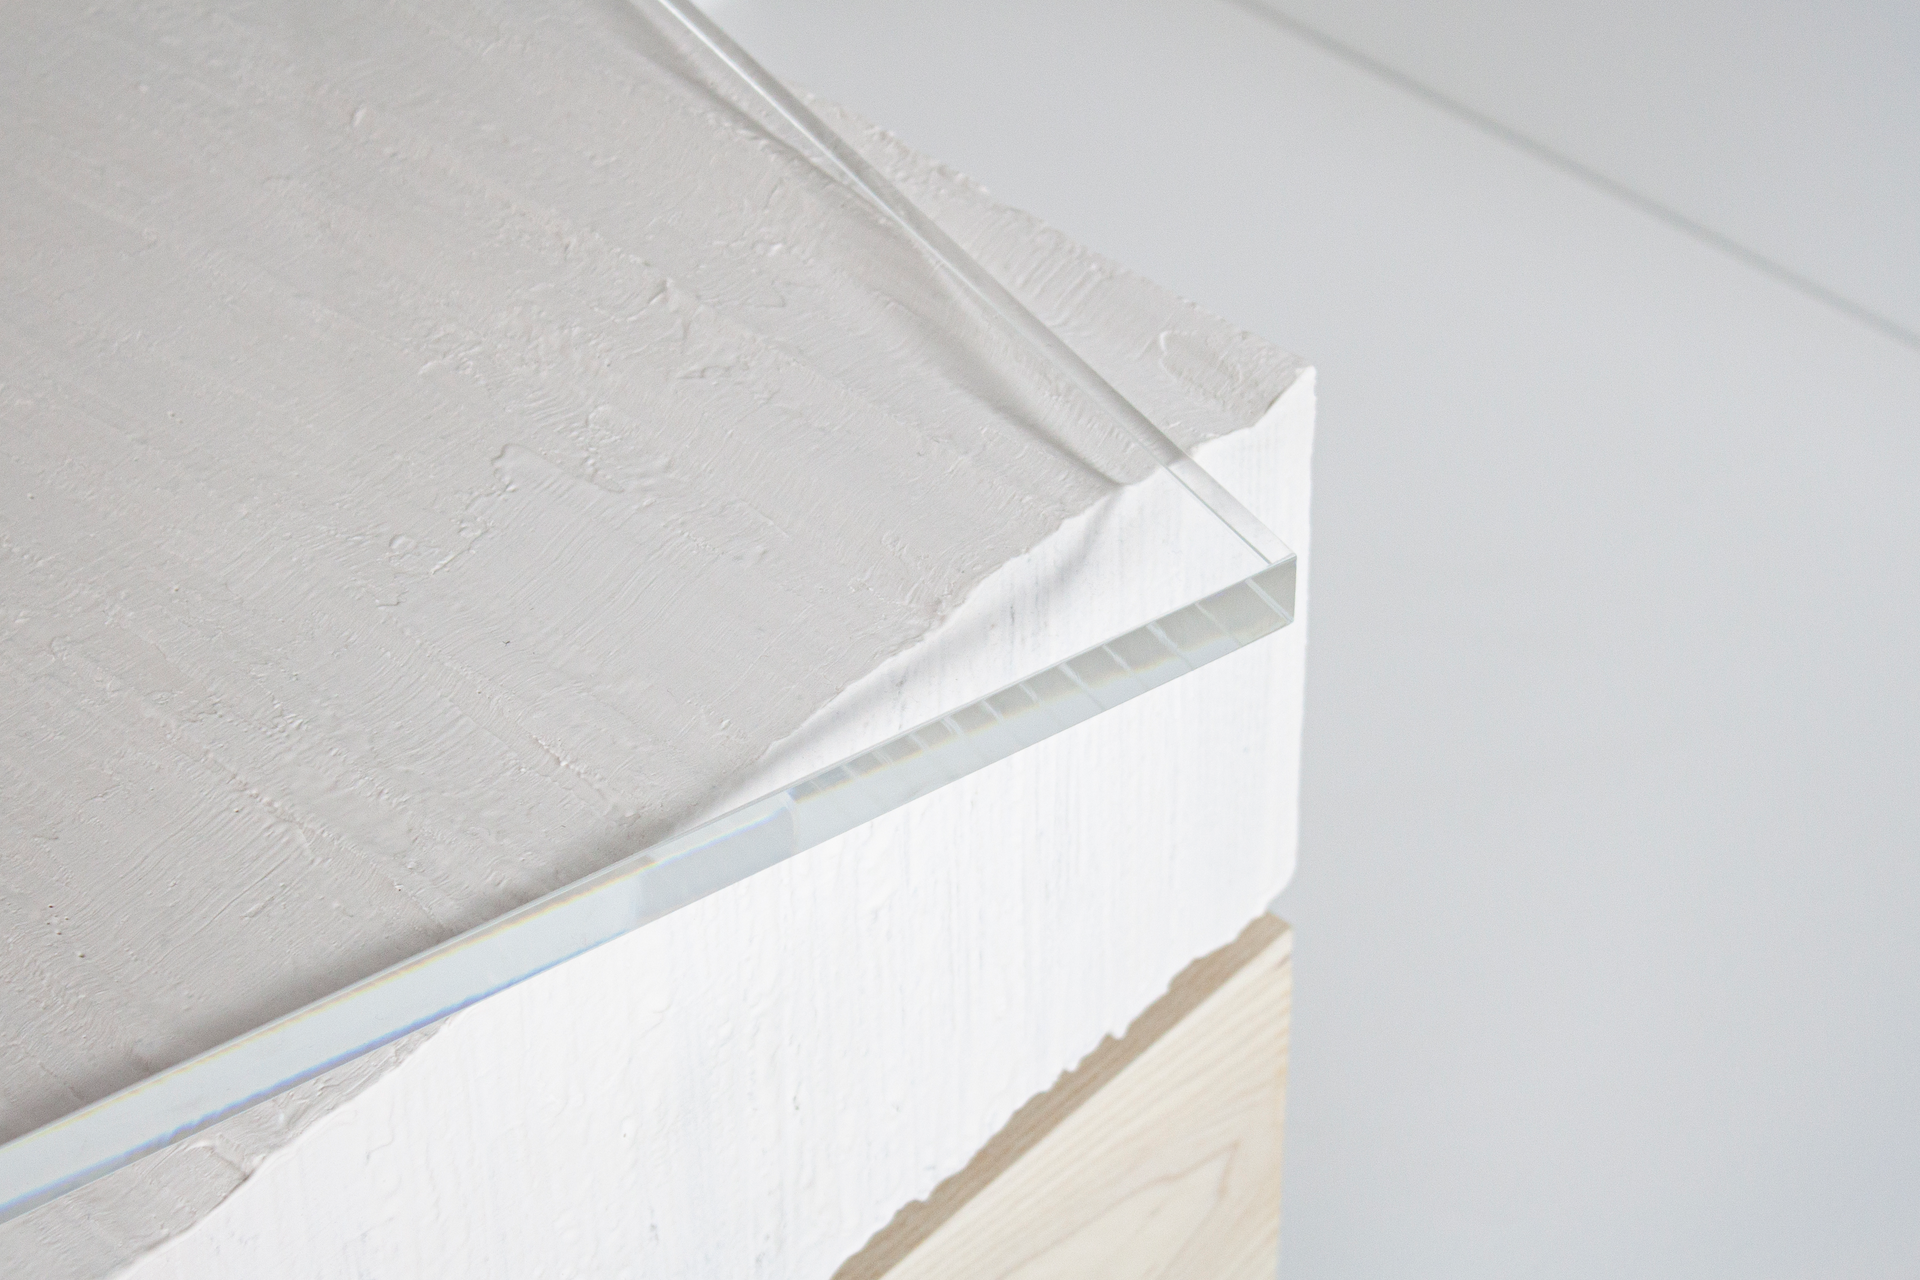 Stack Side Table 'Differing Perspectives' CraftACT 2020